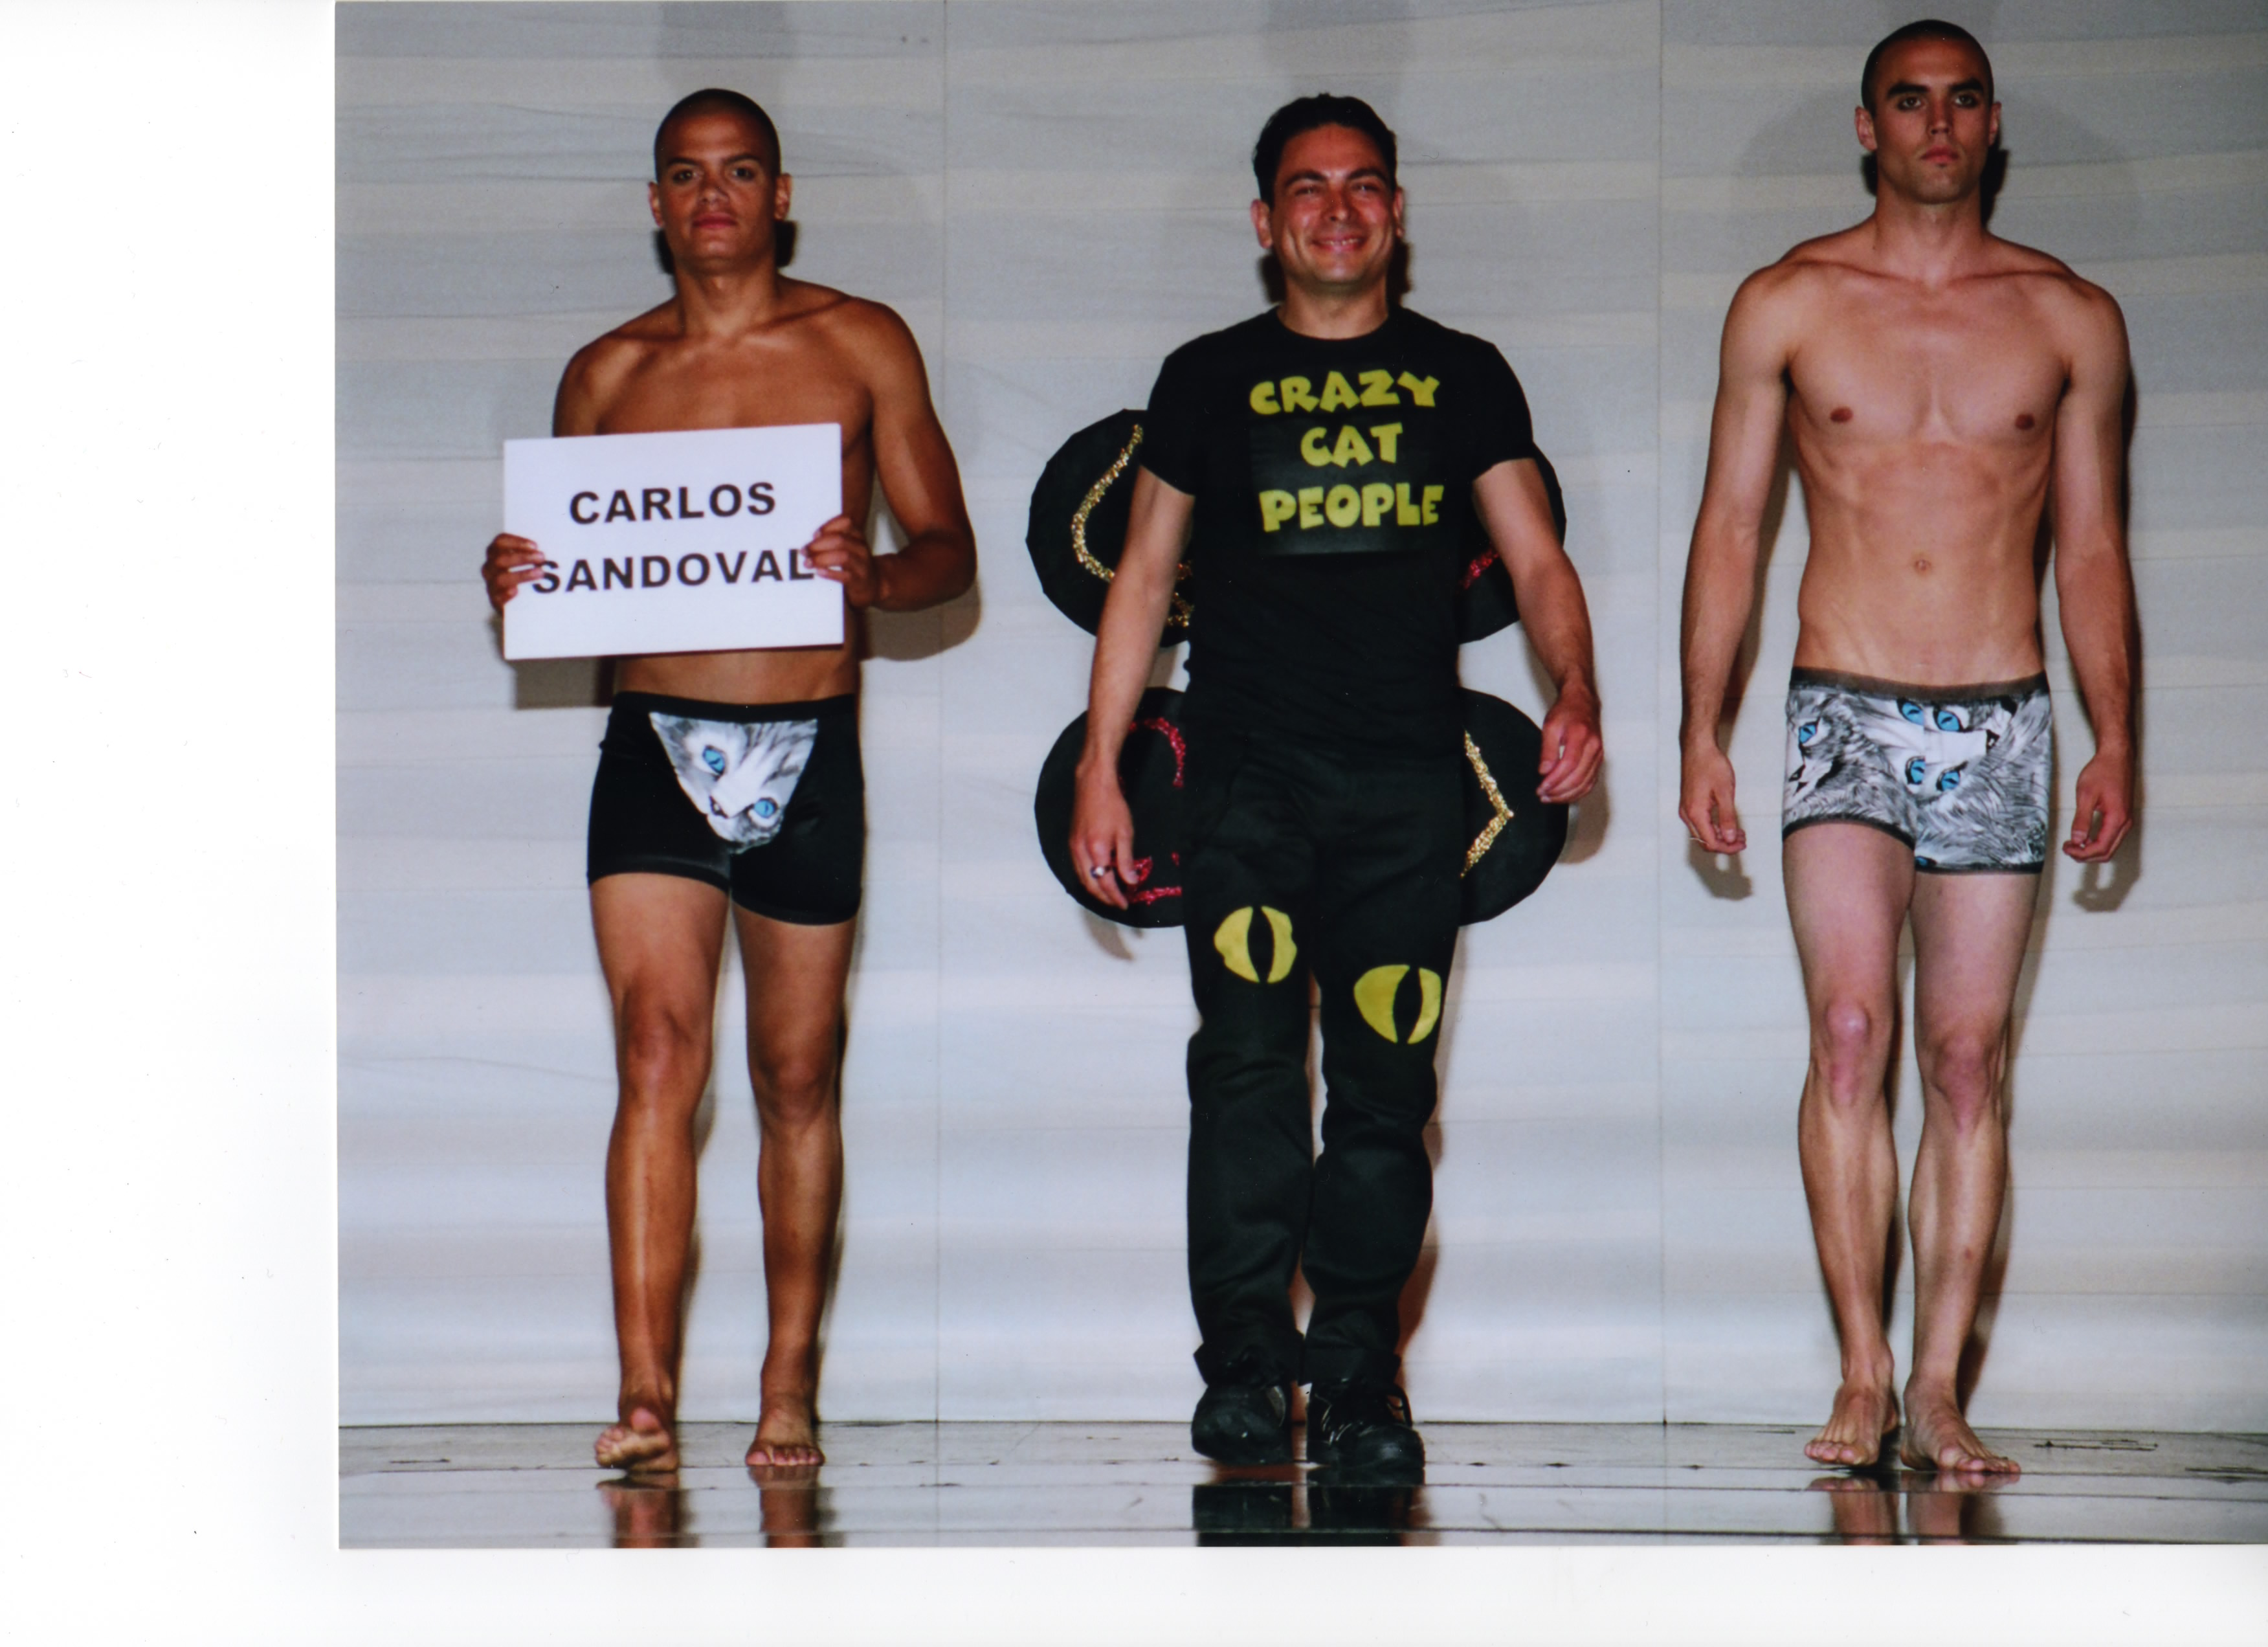 Fashion designer Carlos Sandoval wearing a Crazy Cat People shirt with cat eyes on the pant legs. On each side is a male model wearing cat-themed swimwear